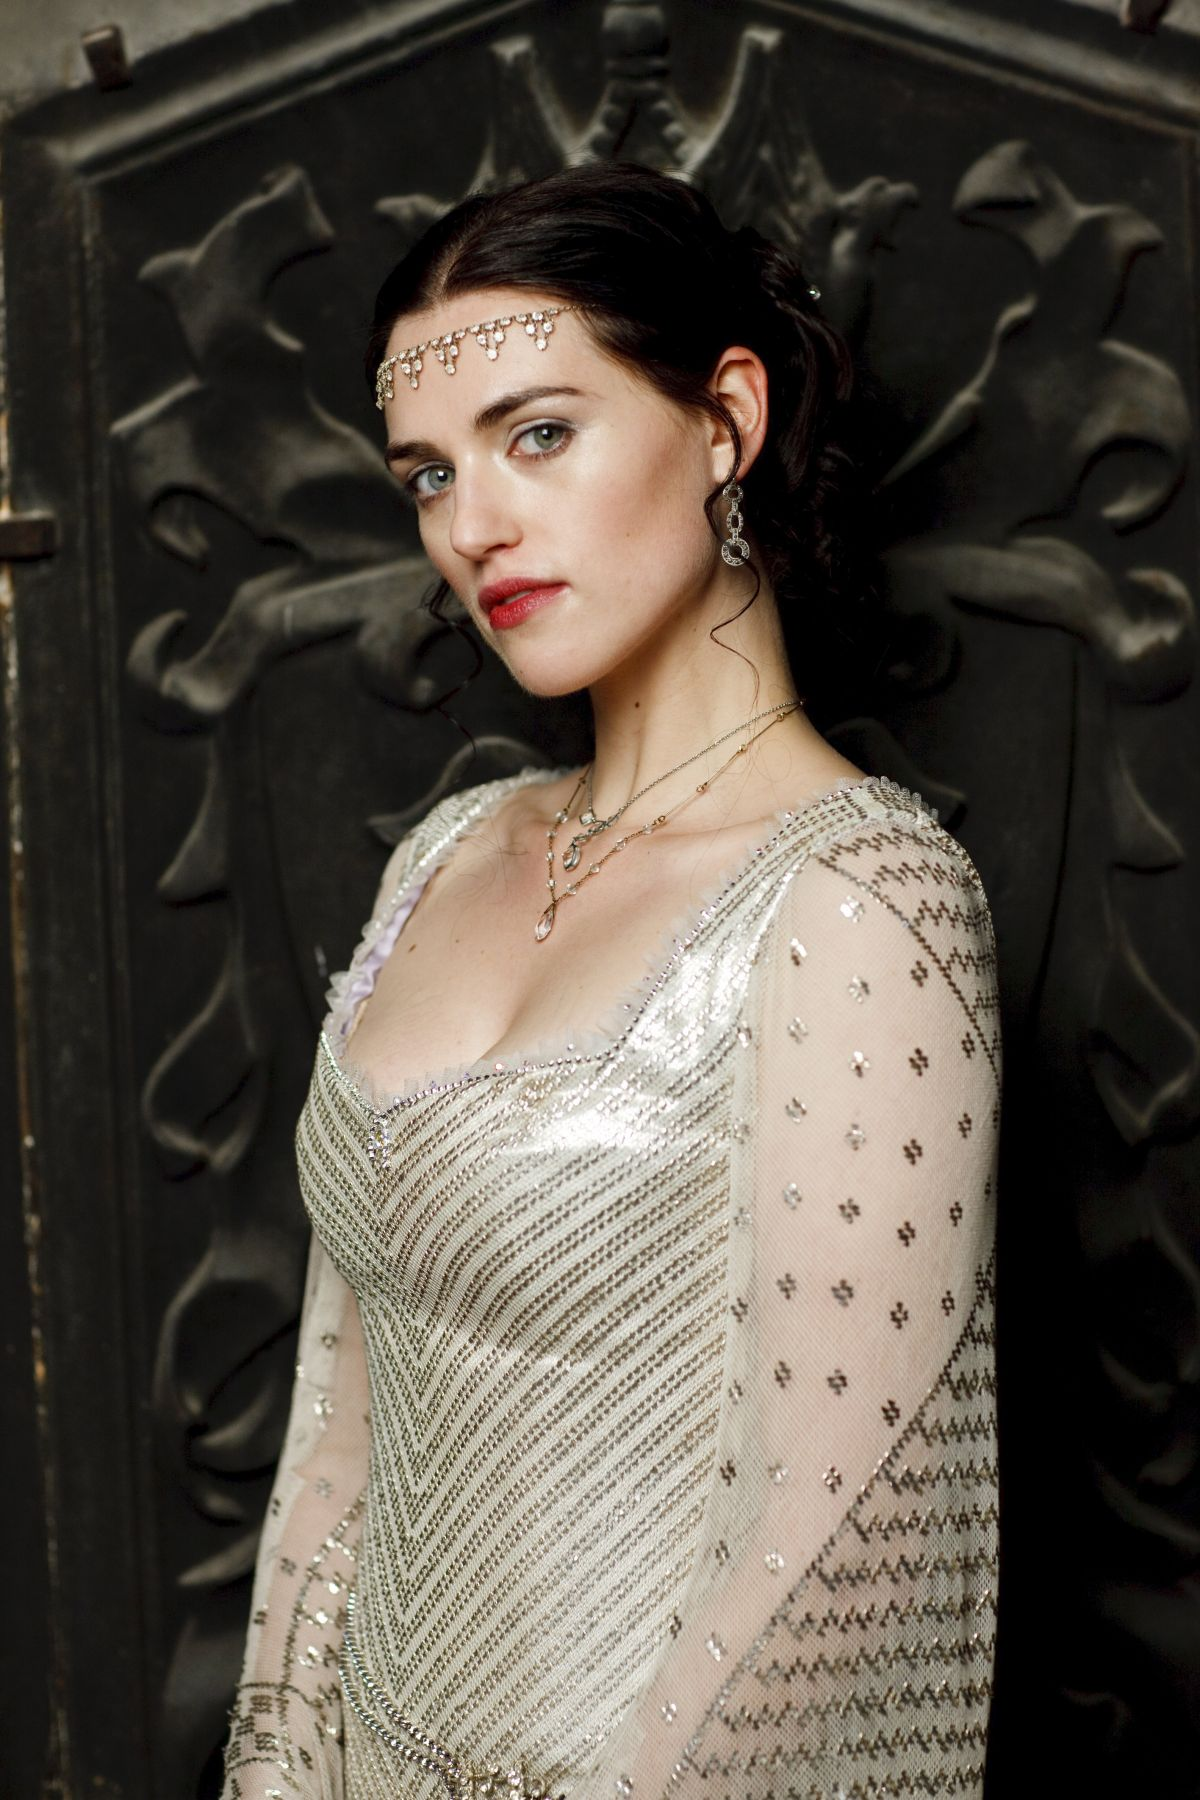 katie mcgrath merlin